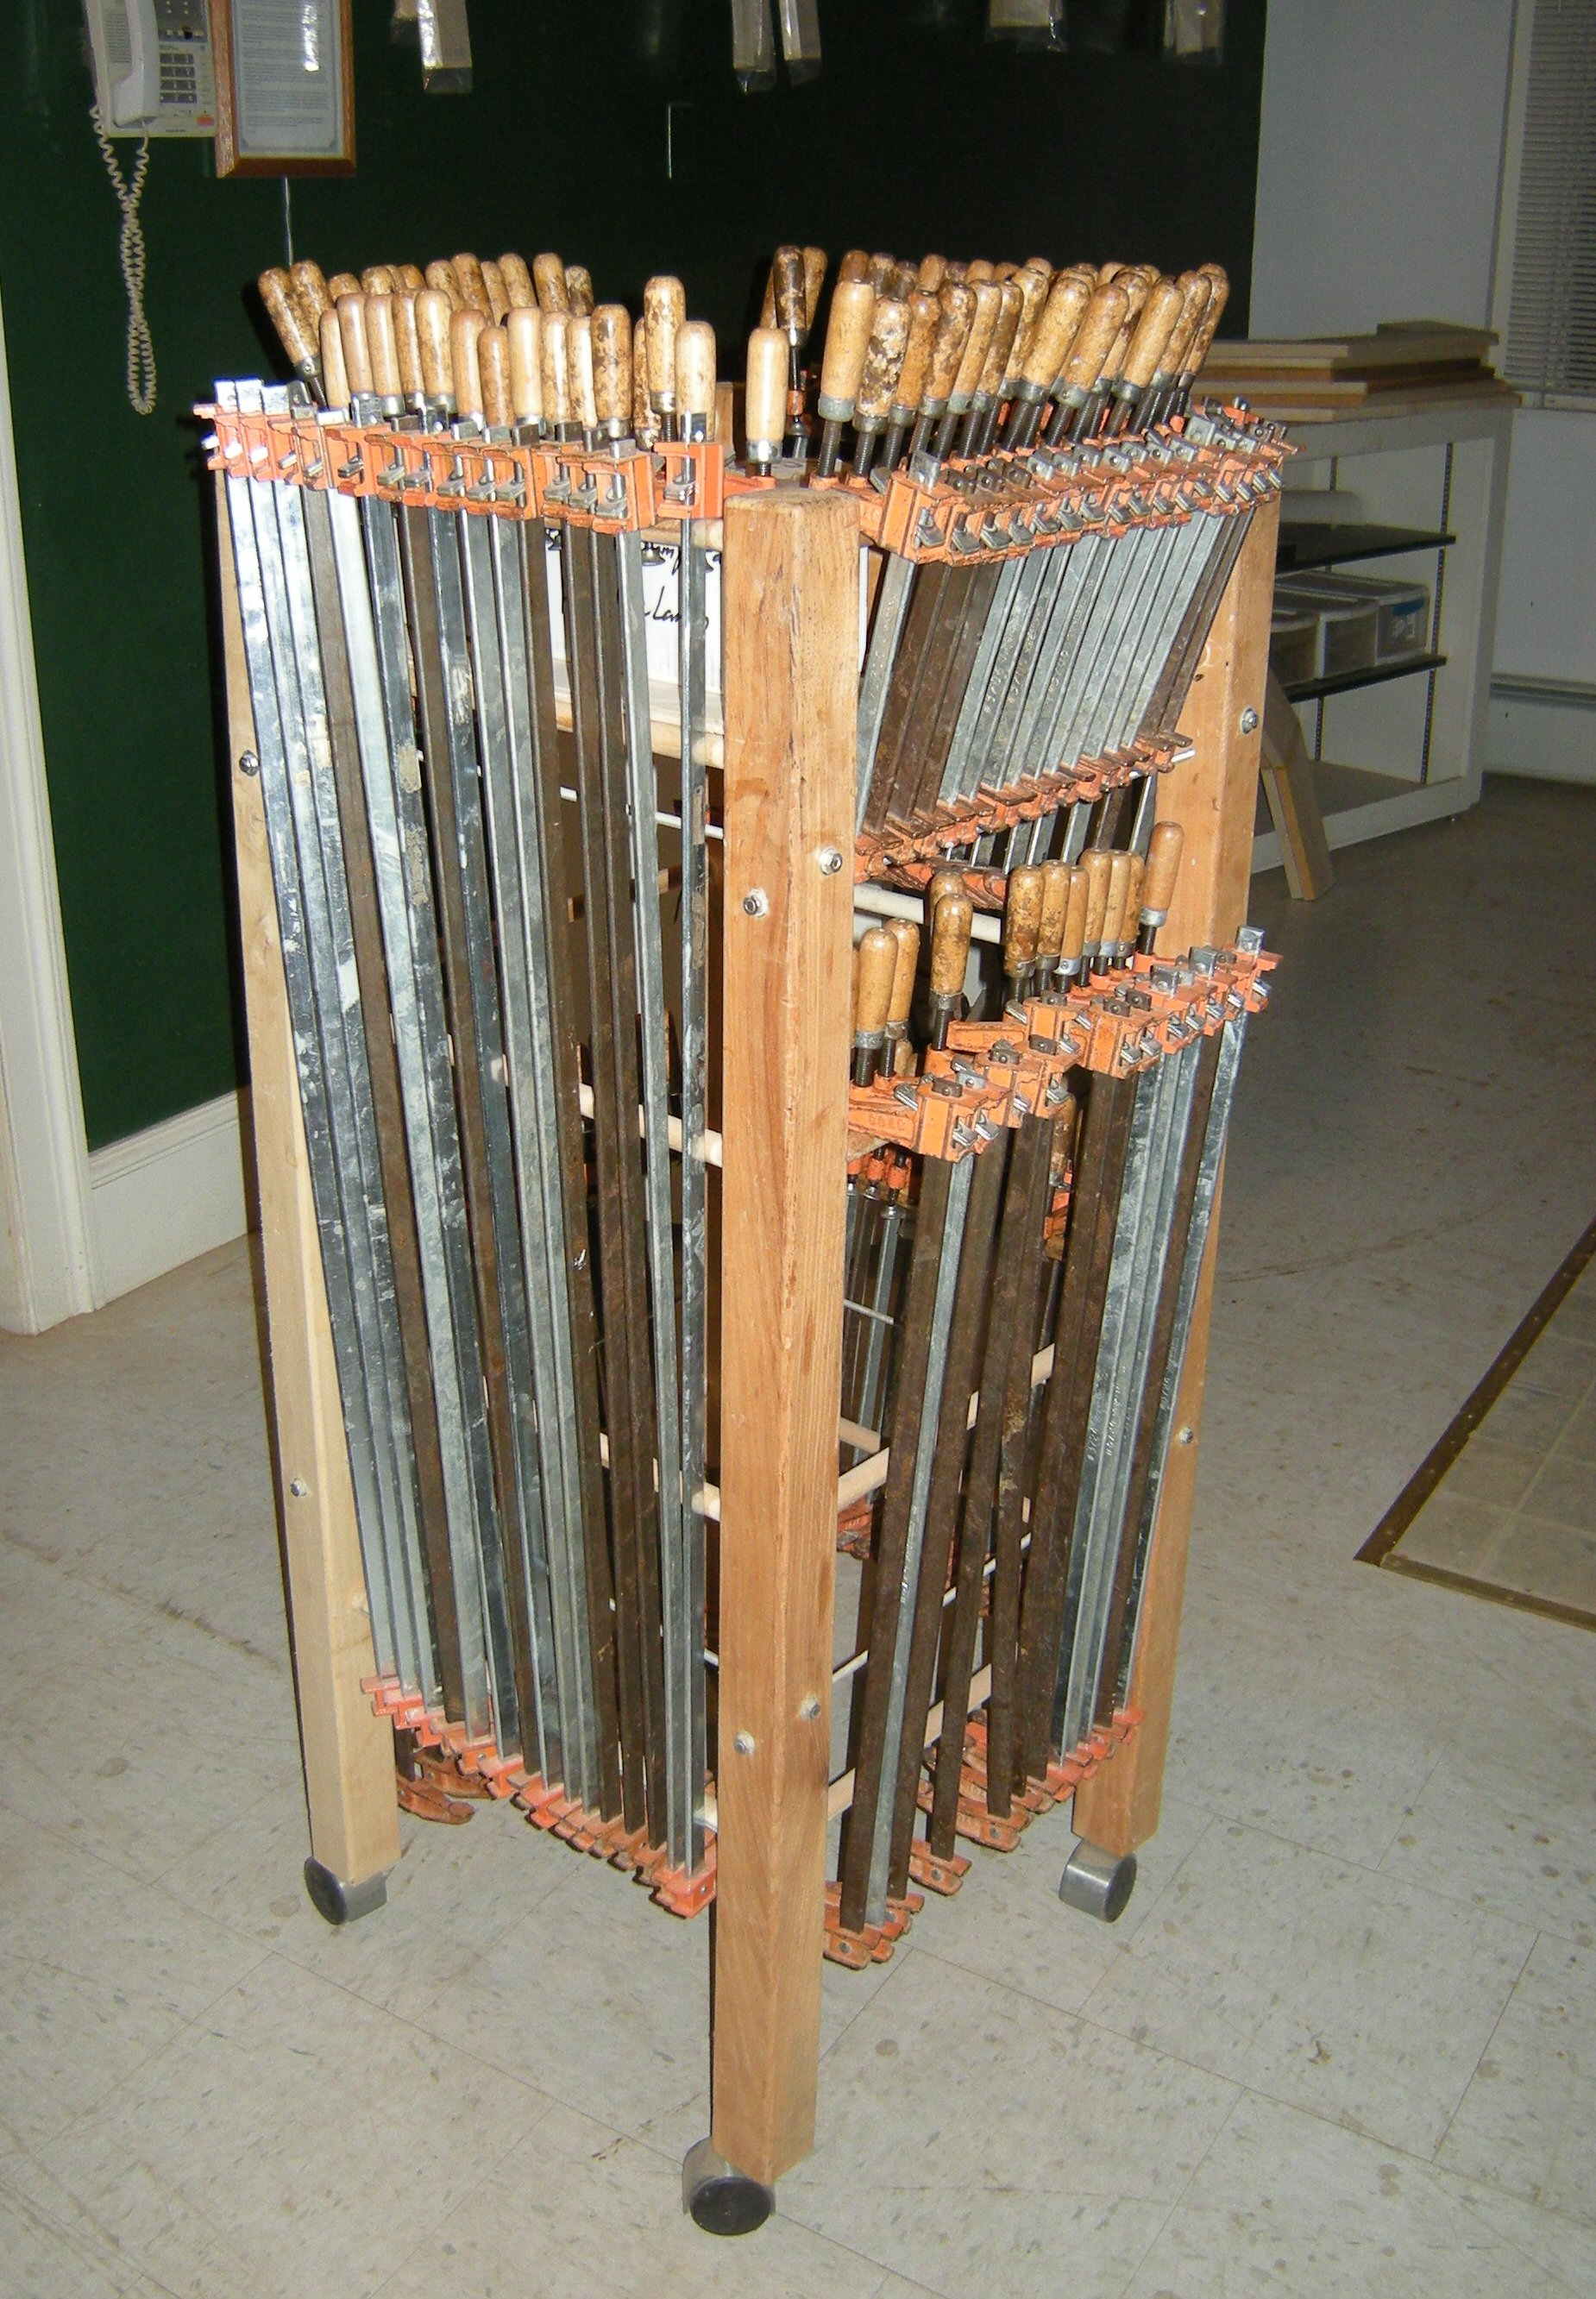 Another portable clamp rack